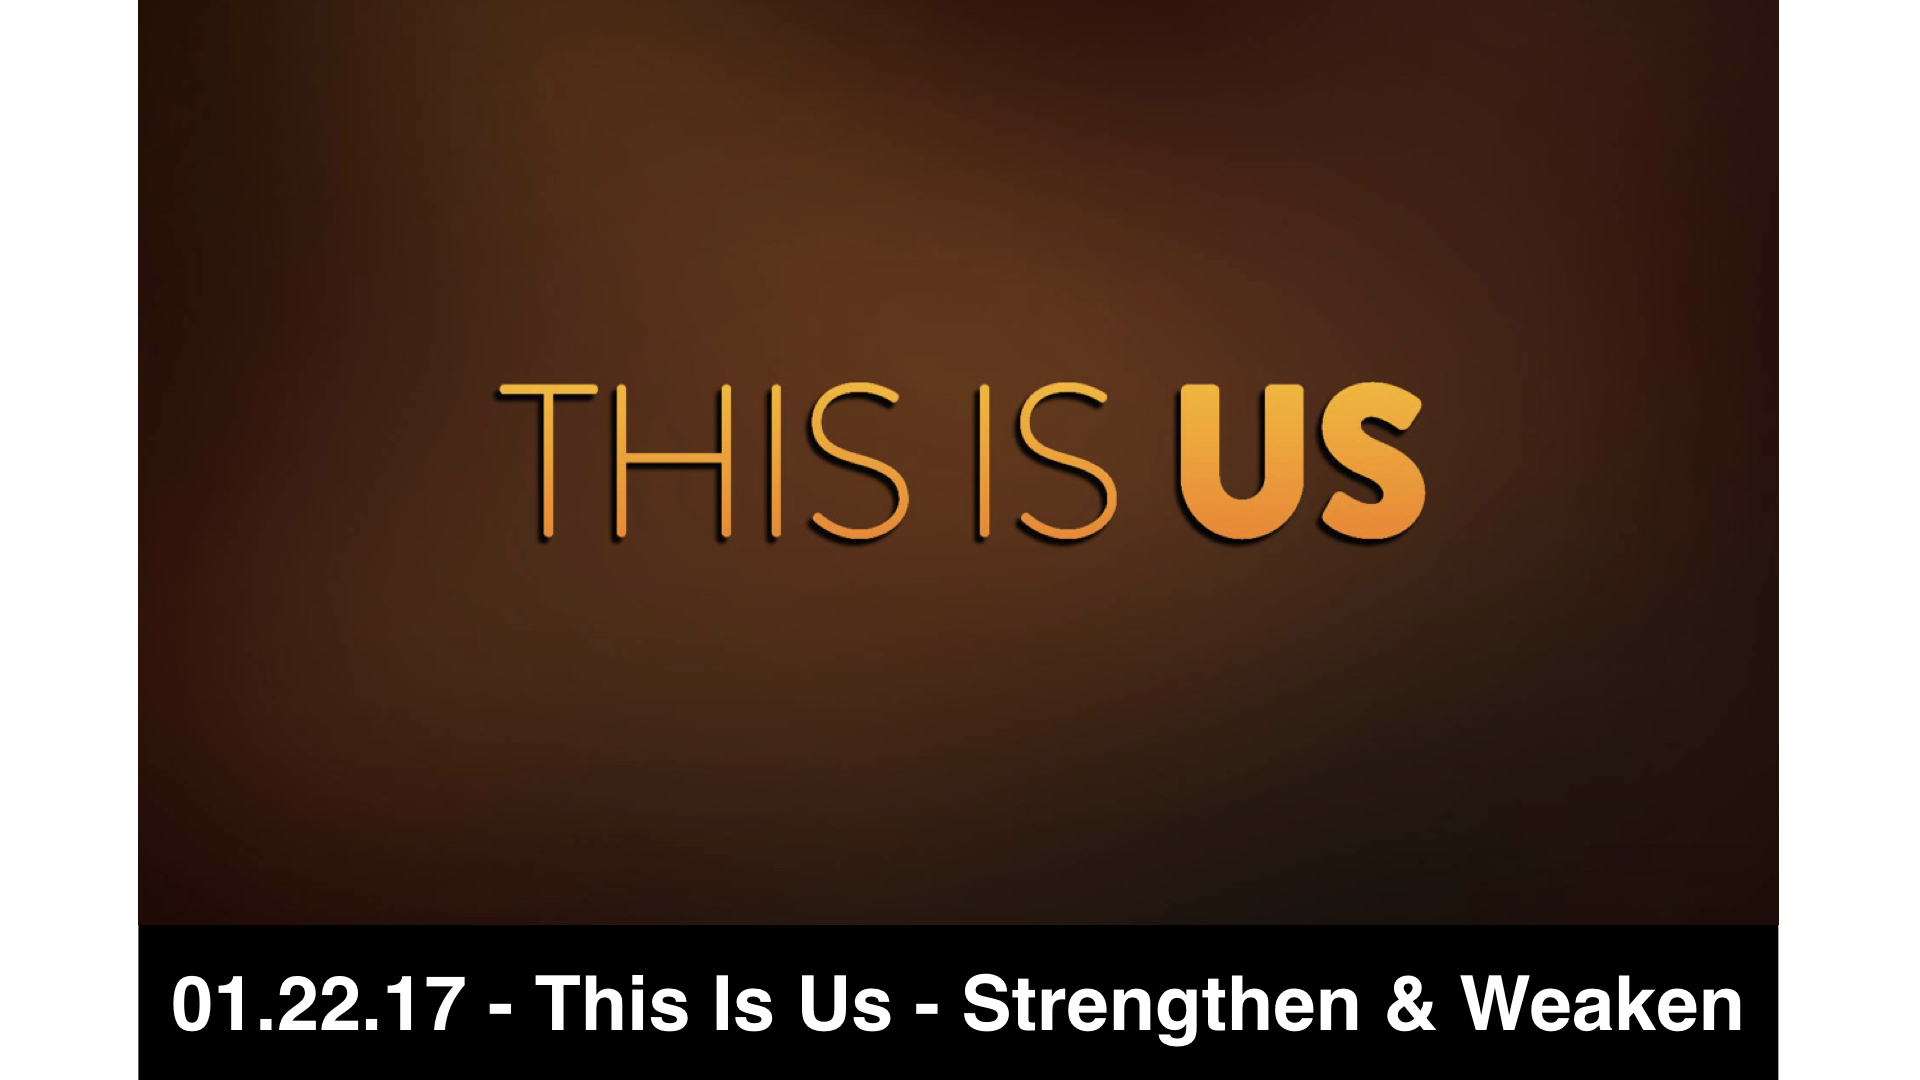 01.22.17 - This Is Us - Strengthen & Weaken